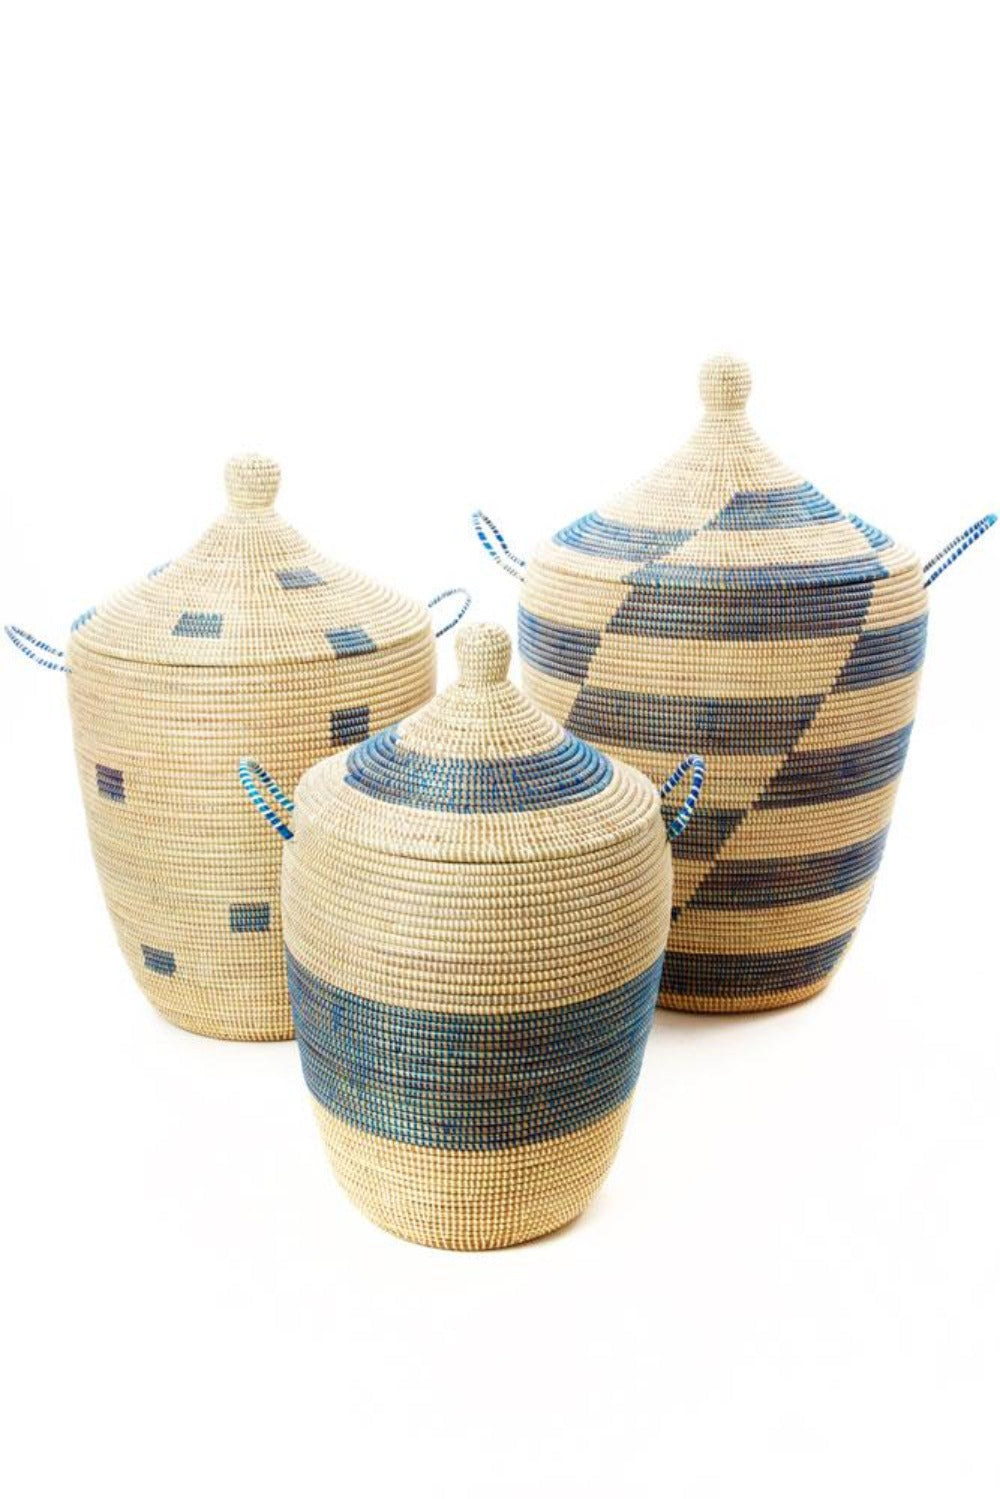 Swahili African Modern Set of Three Blue and Cream Mixed Pattern Hampers Jungle Pillows